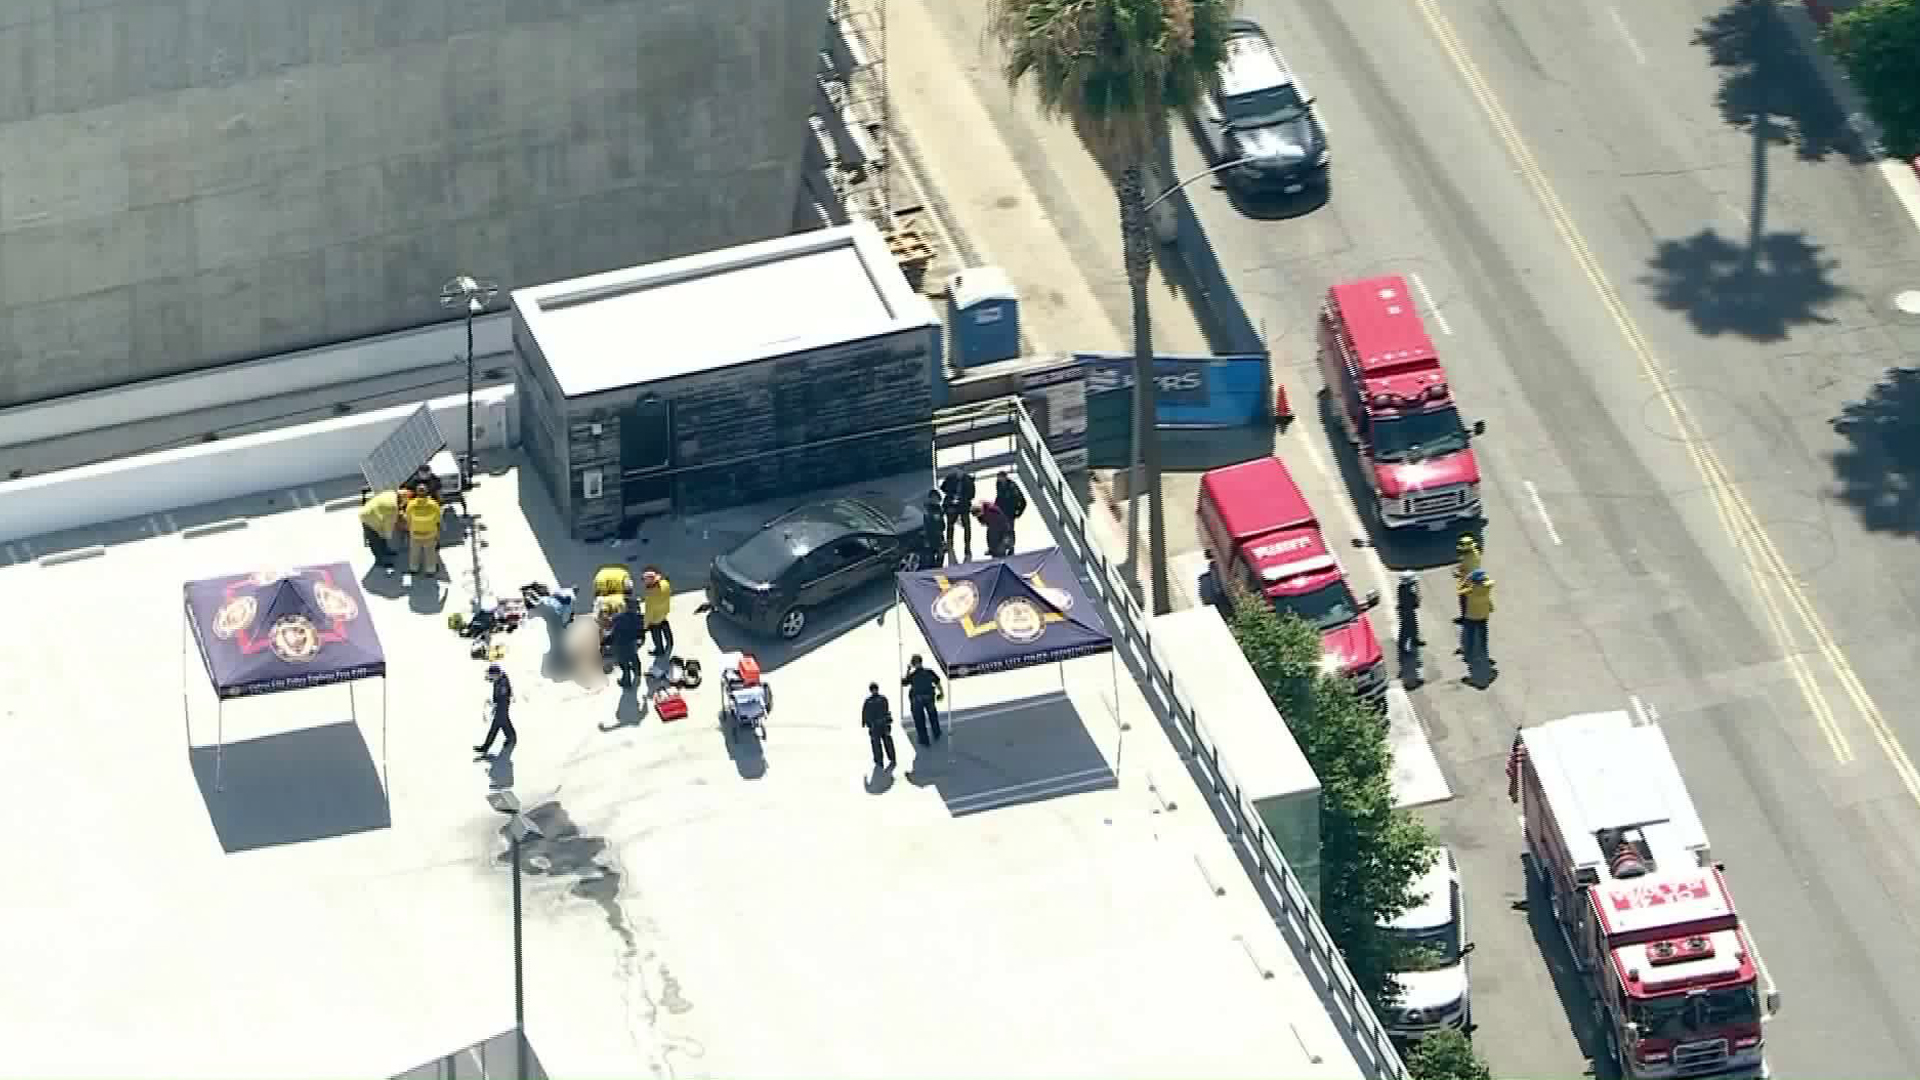 Police and firefighters respond to the scene of an officer-involved shooting in Culver City on Aug. 3, 2020. (KTLA)